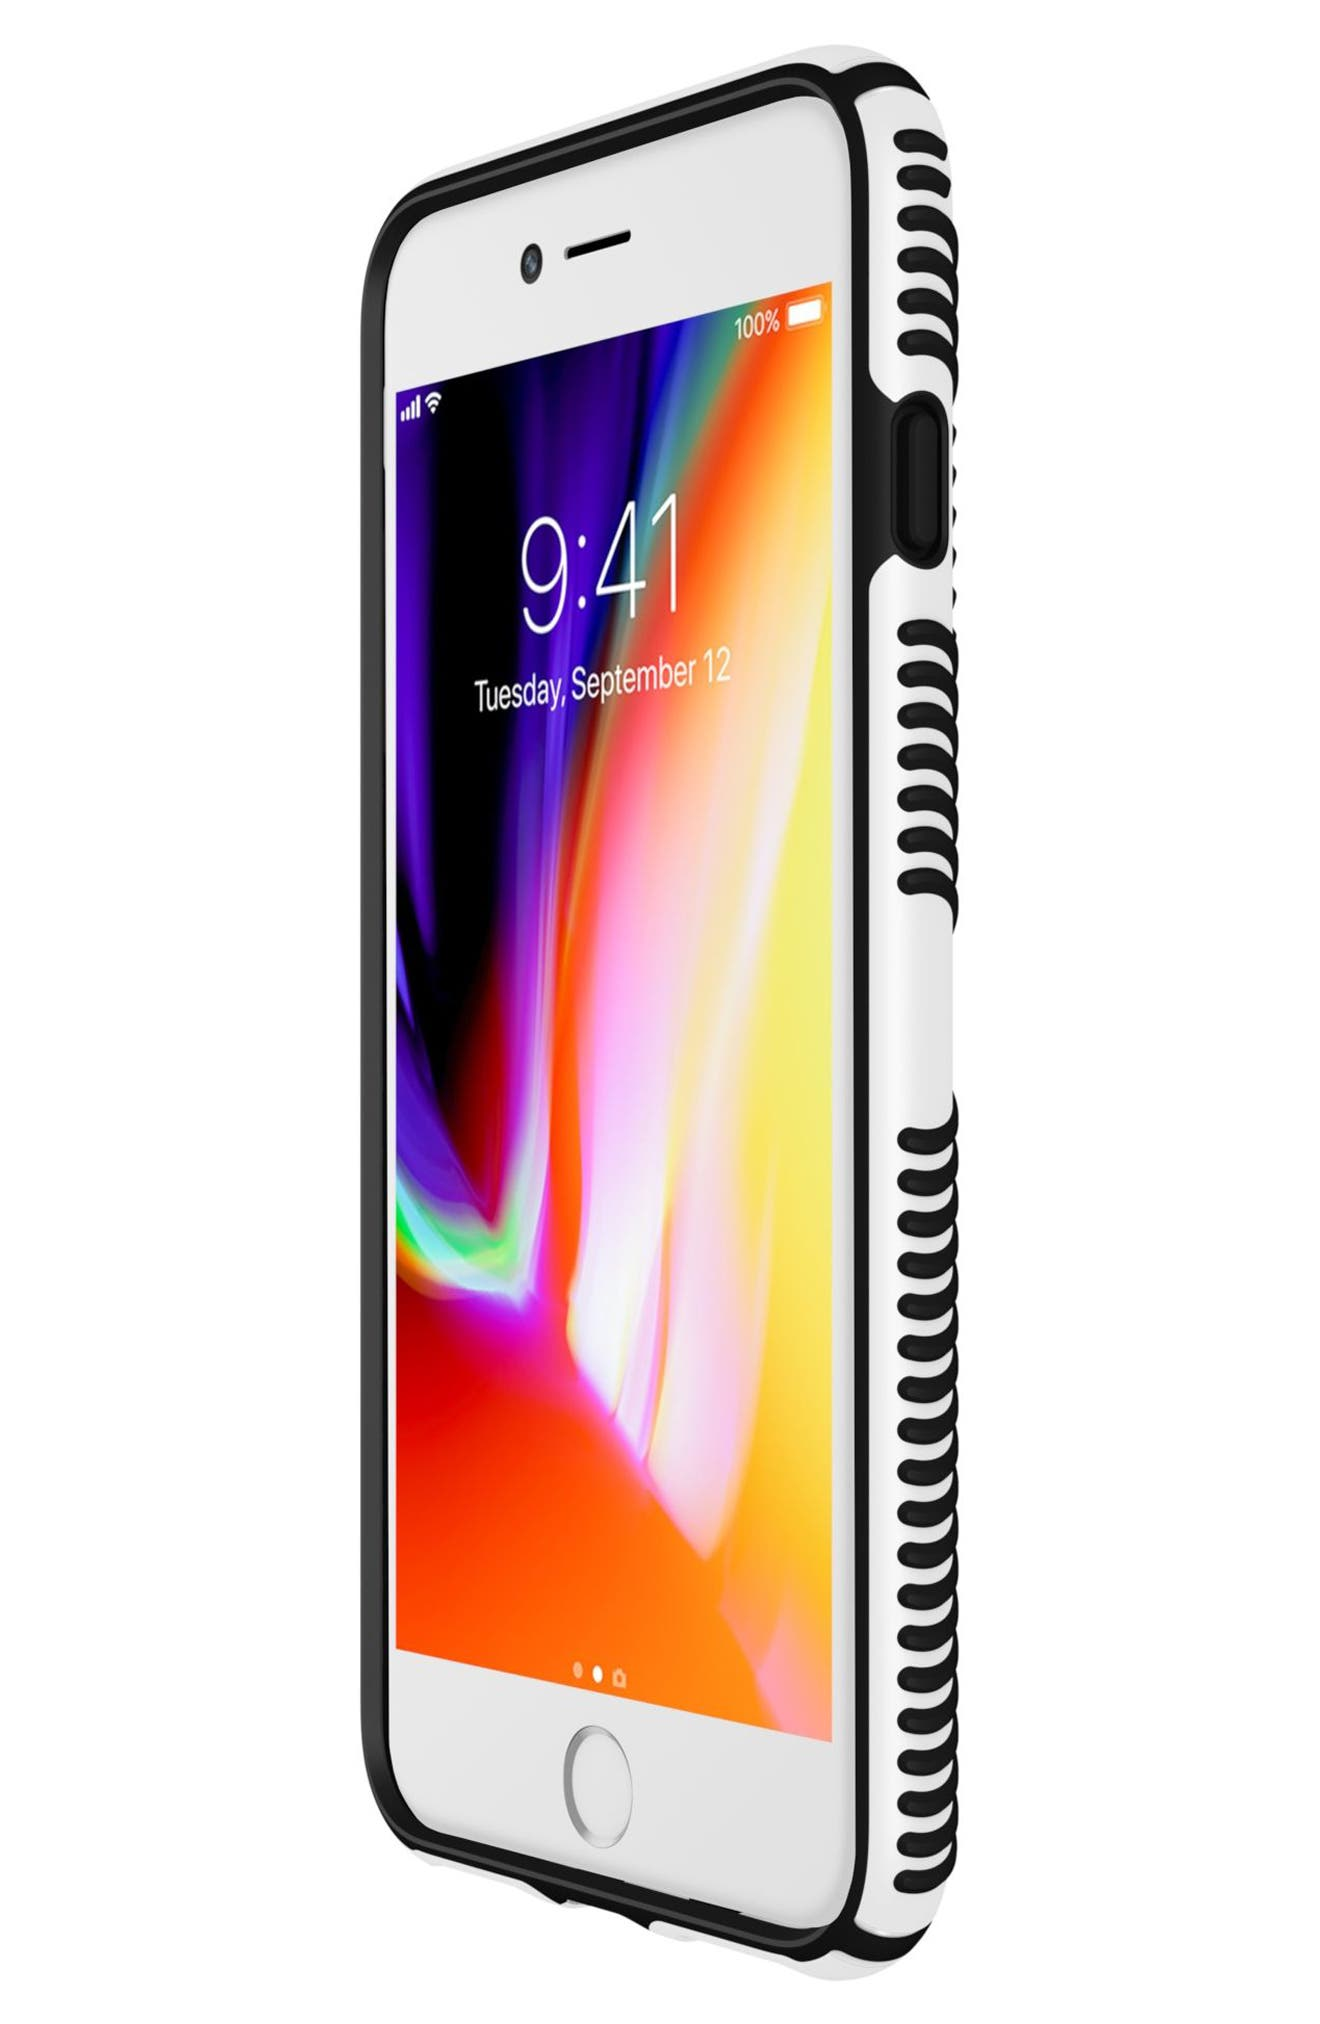 Grip iPhone 6/6s/7/8 Plus Case,                             Alternate thumbnail 7, color,                             White/ Black